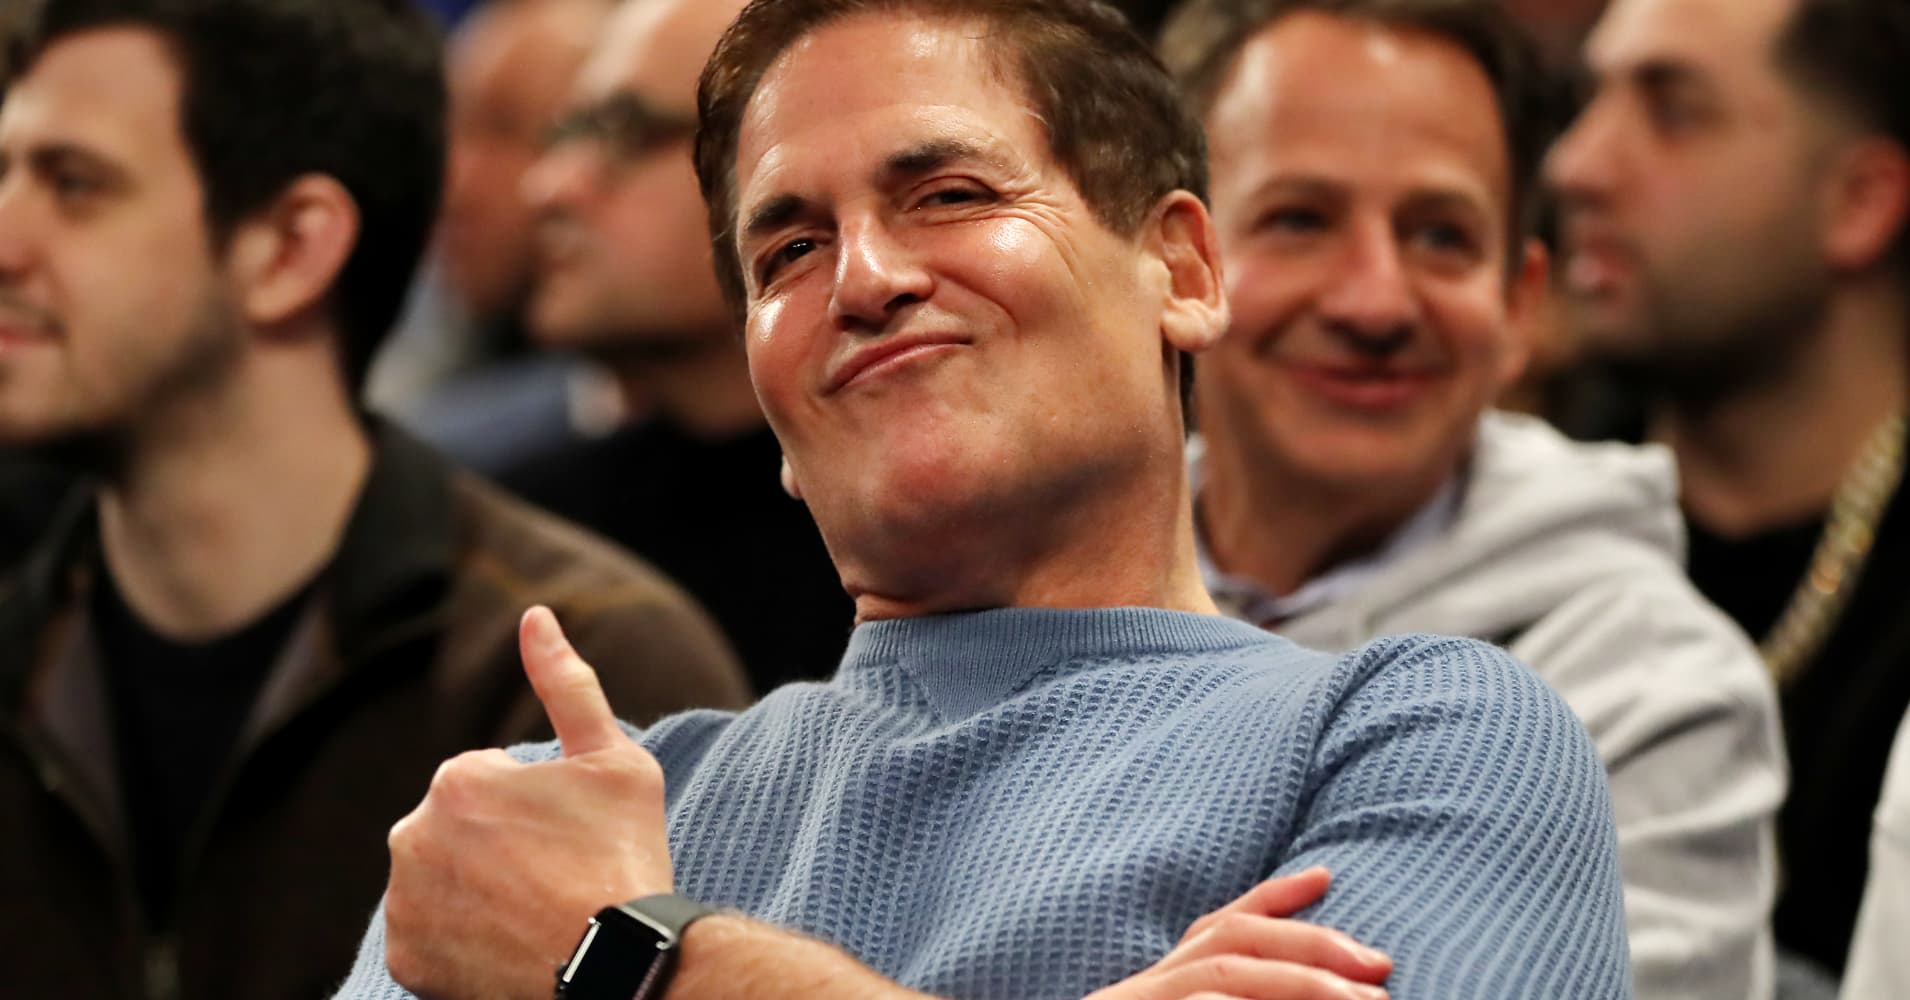 Dallas Mavericks Mark Cuban smiles during the game between the New York Knicks and the Dallas Mavericks at Madison Square Garden on January 30, 2019 in New York City.